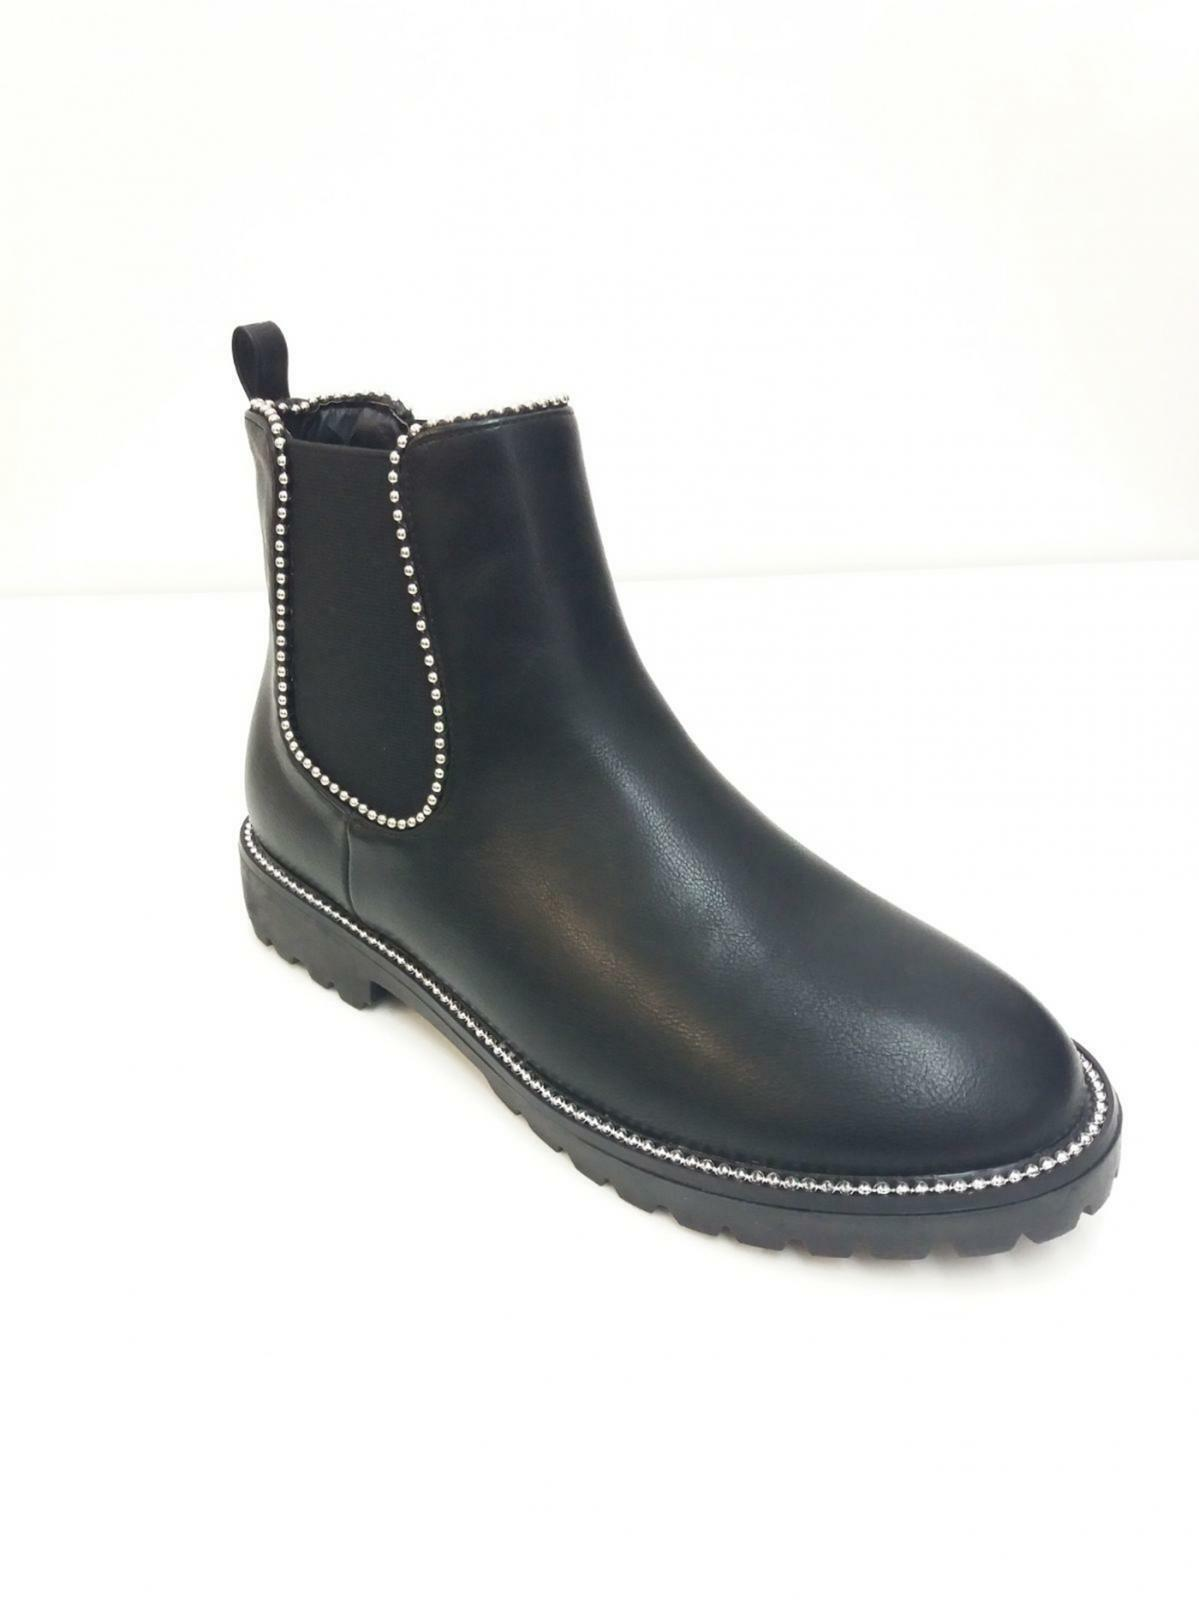 LADIES WOMEN CHELSEA ANKLE BOOT STUDDED LATEST FASHION SHOES 3-8